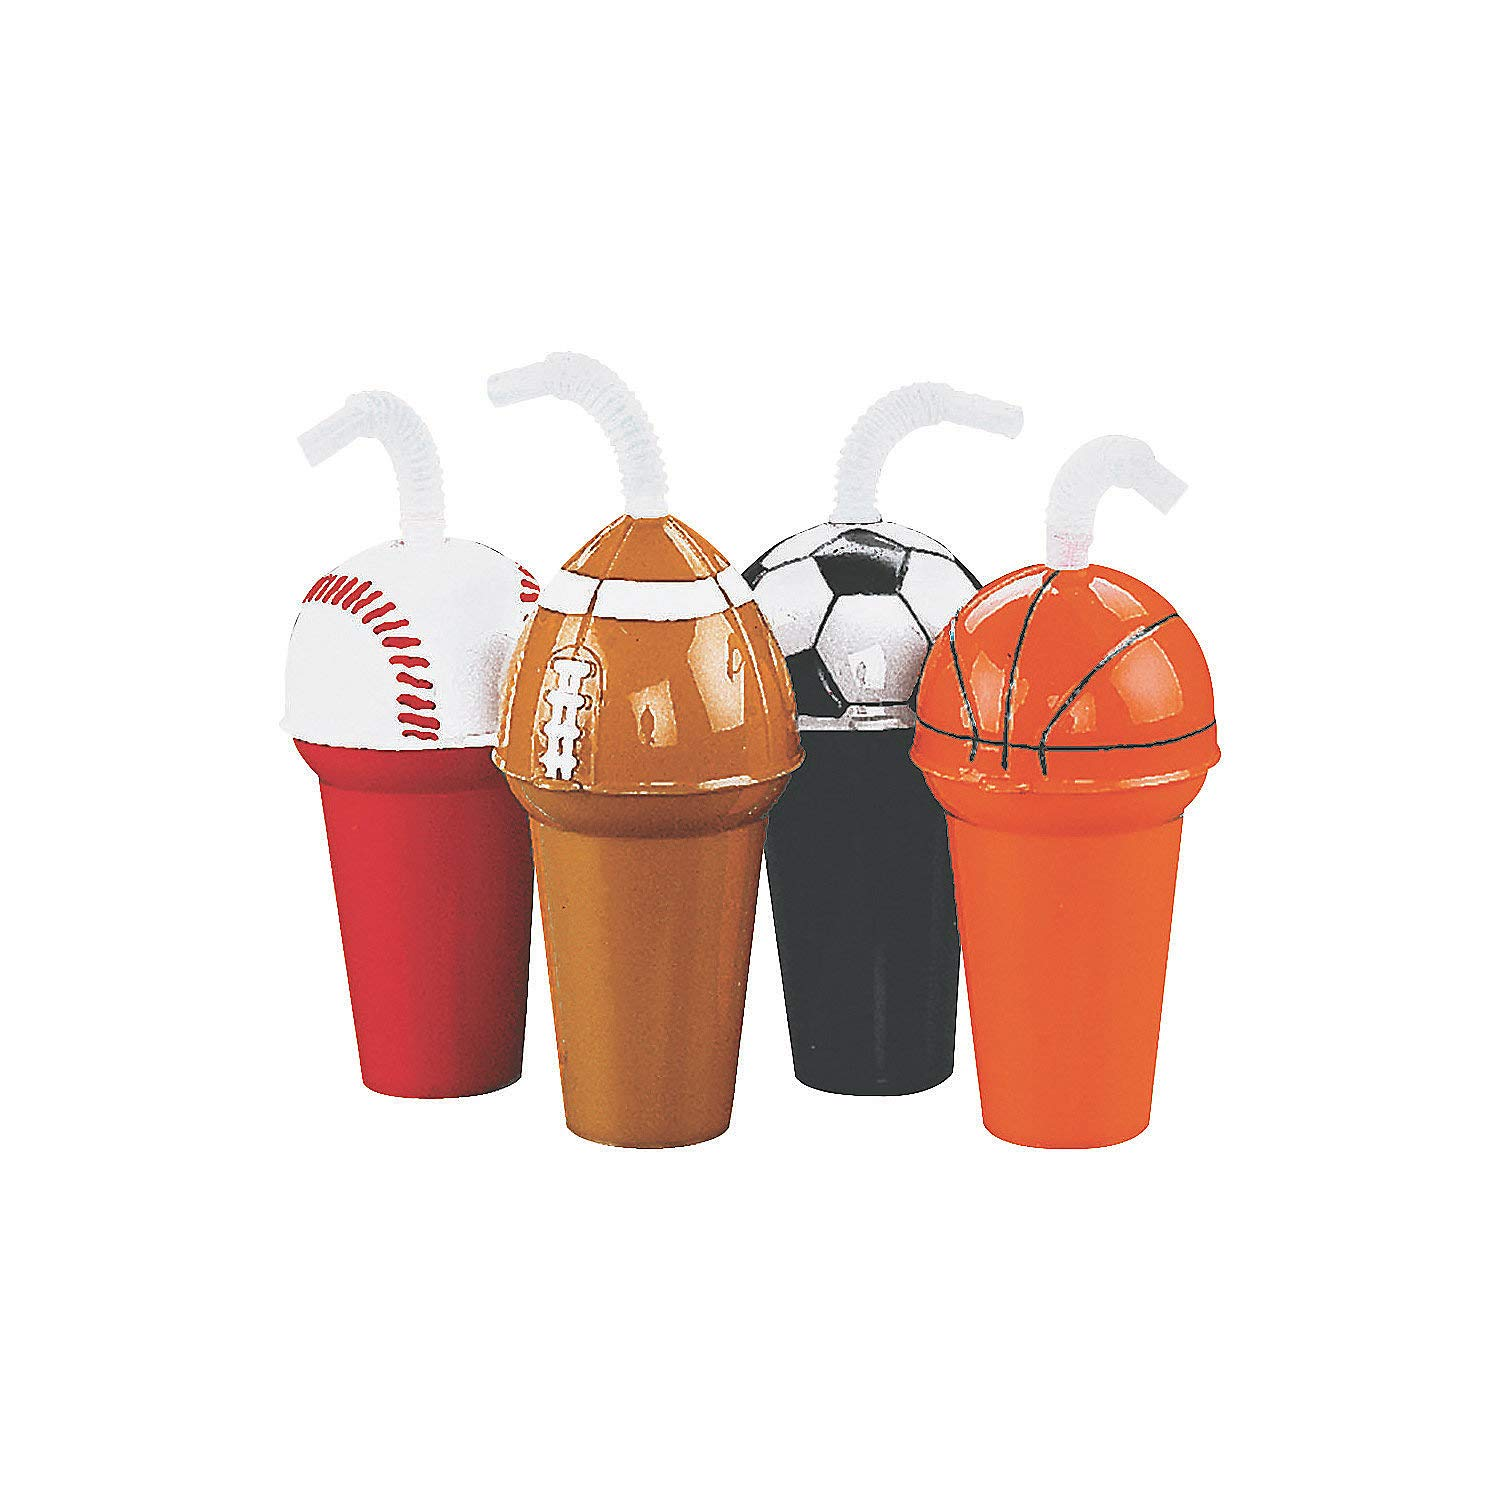 Fun Express - Sportball Cup Assortment - Party Supplies - Drinkware - Sipper & Molded Cups - 12 Pieces